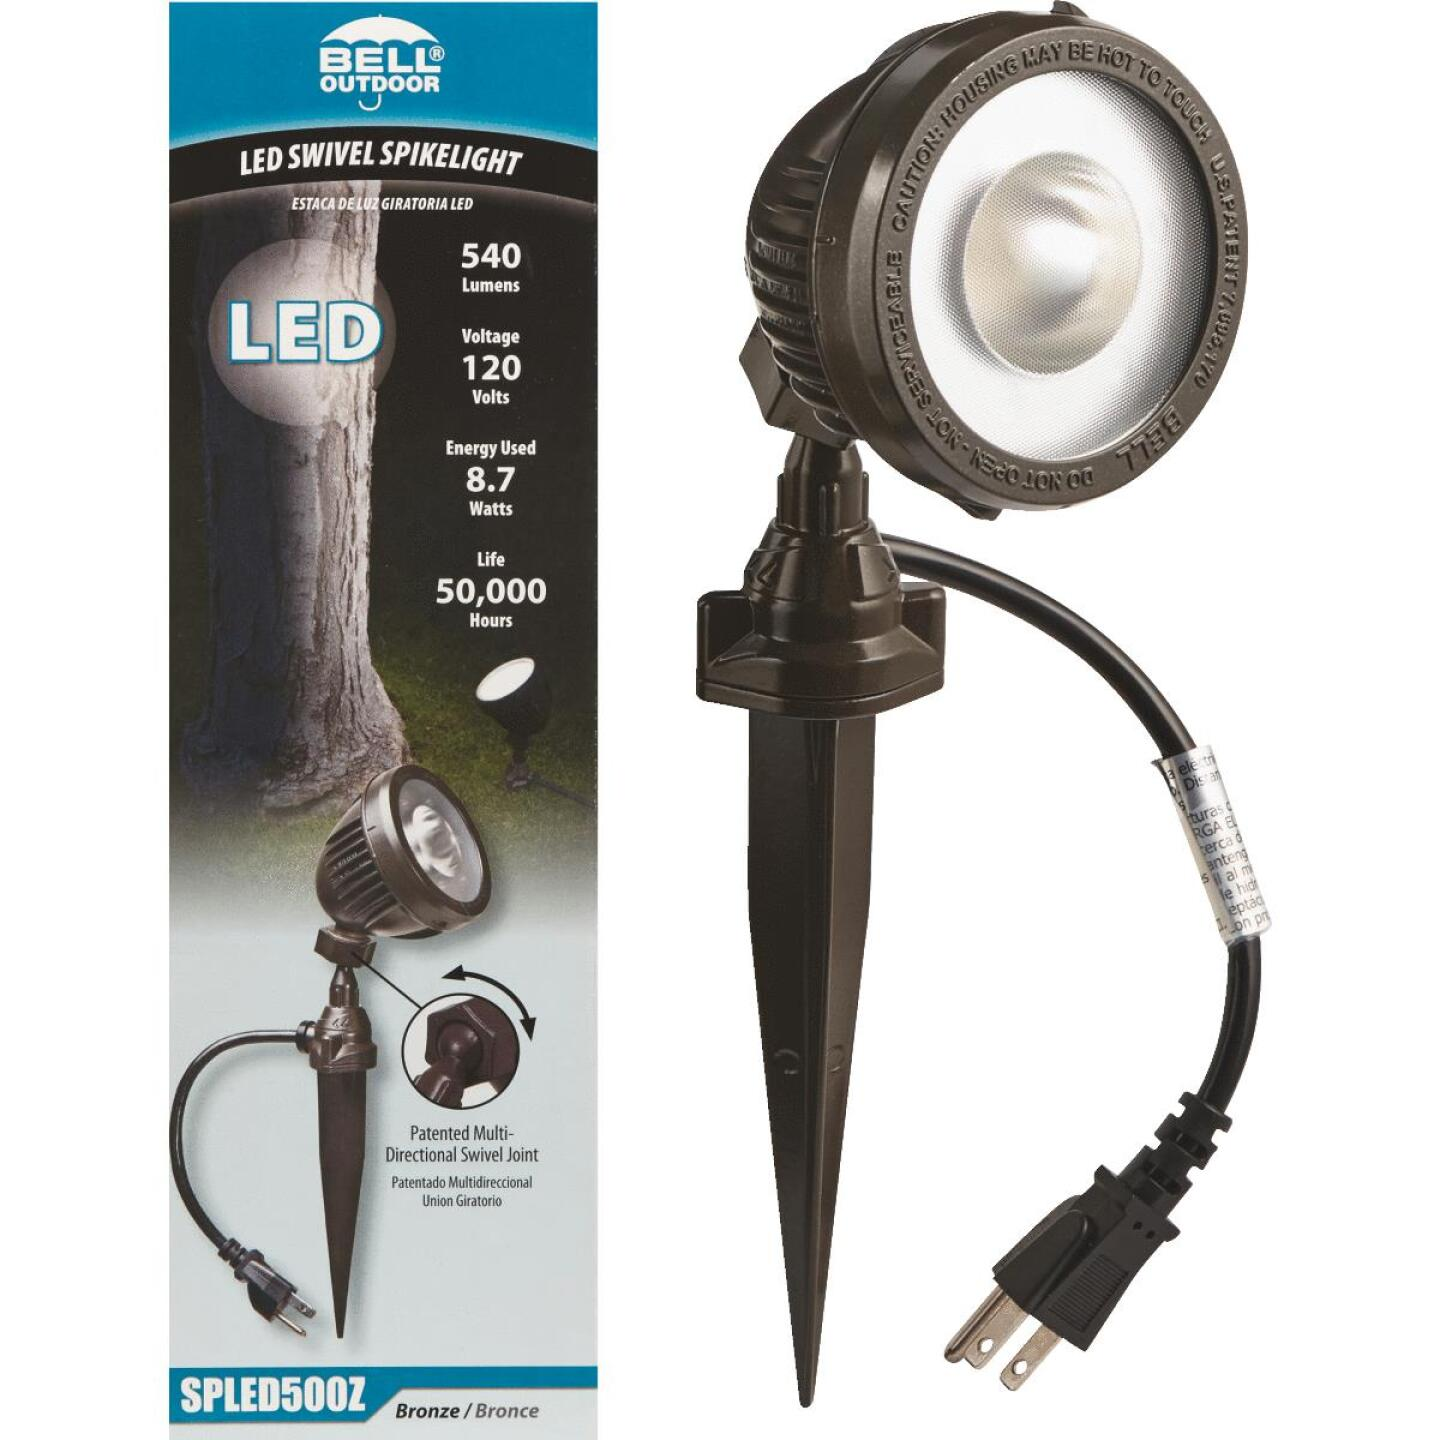 Bell LED Bronze Landscape Stake Light Image 1